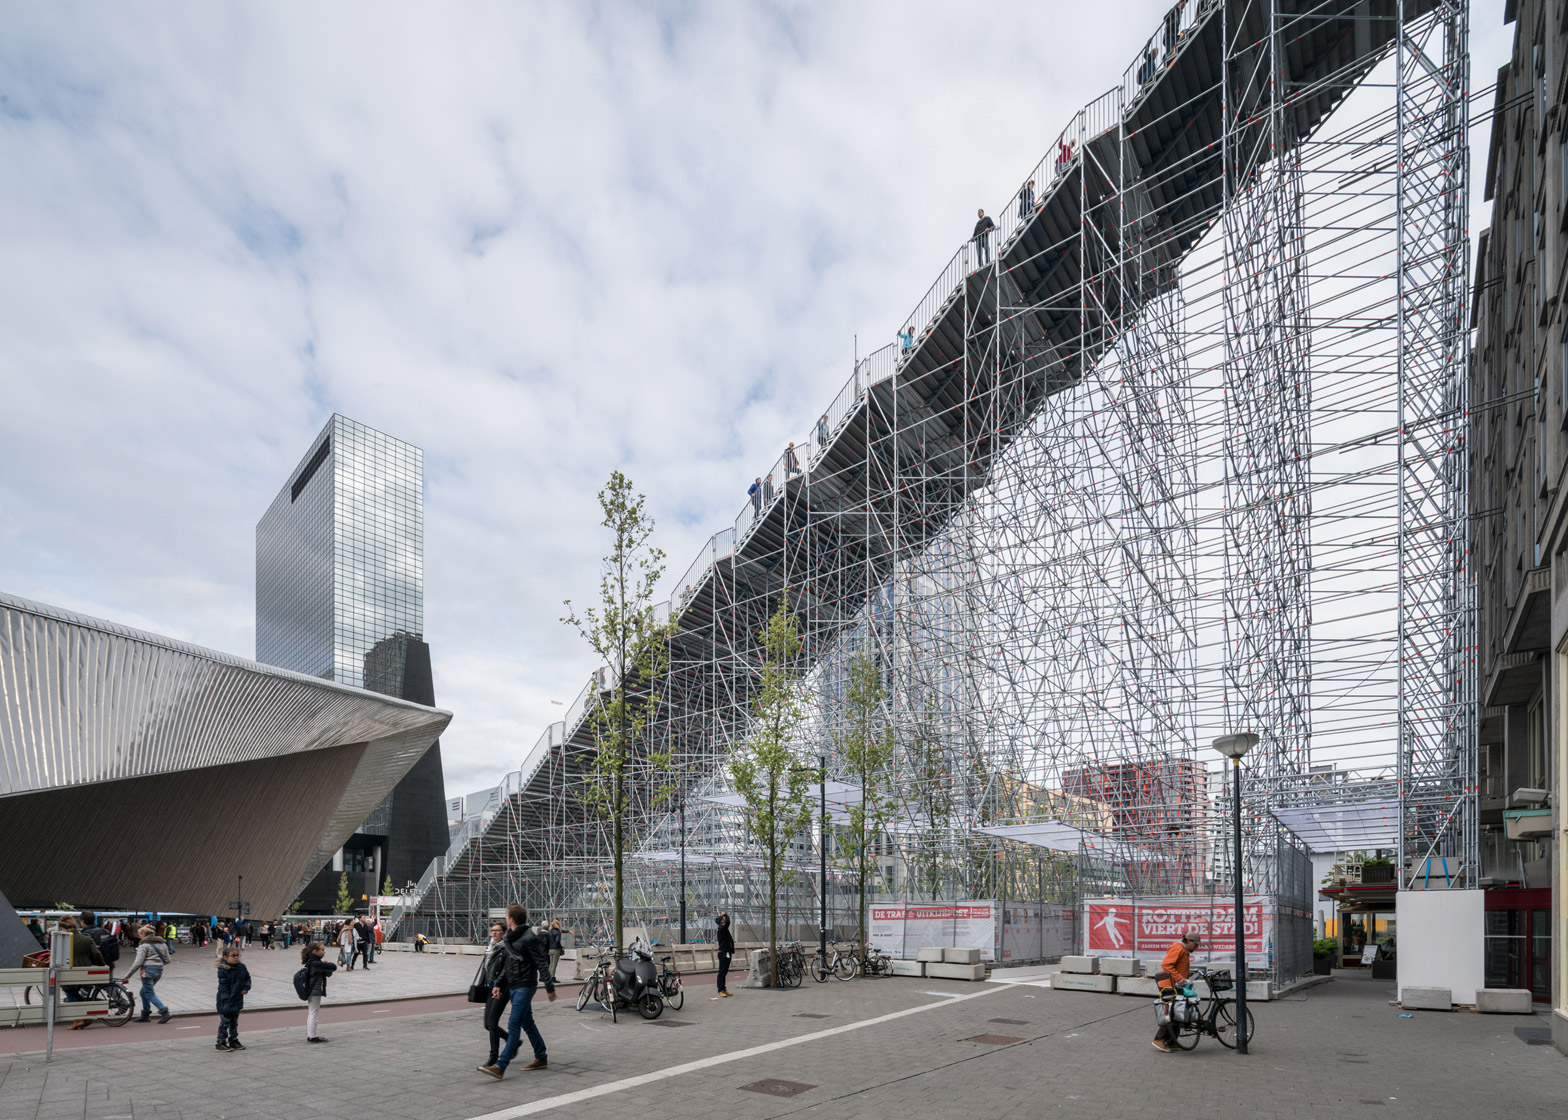 1 Of 6; MVRDV Completes The Stairs, A Giant Scaffolding Staircase In  Rotterdam City Centre